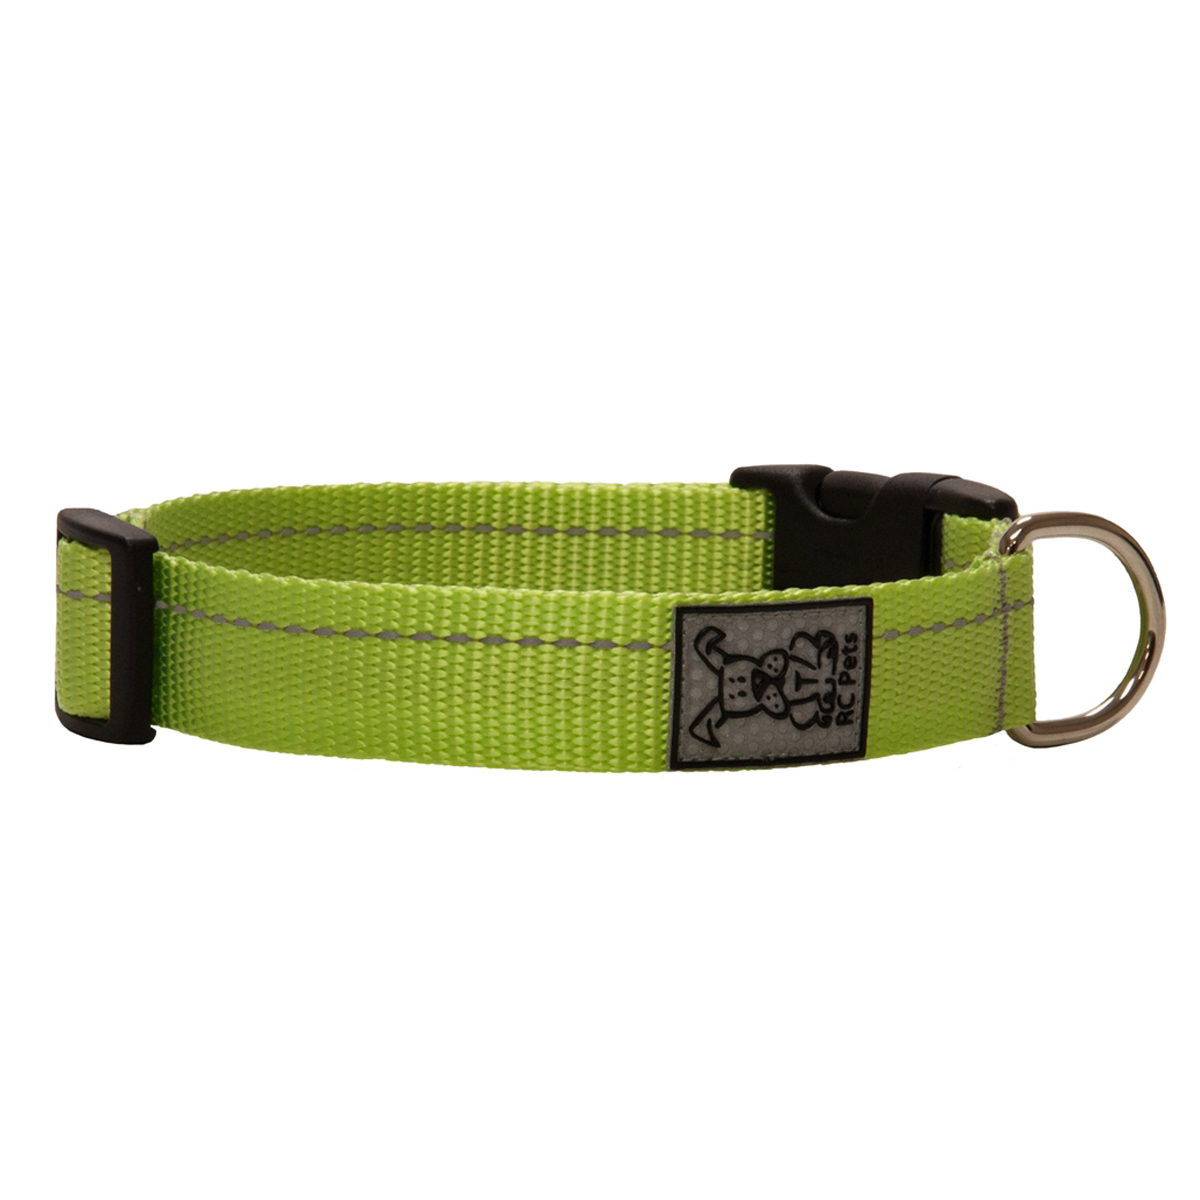 Primary Clip Dog Collar - Lime